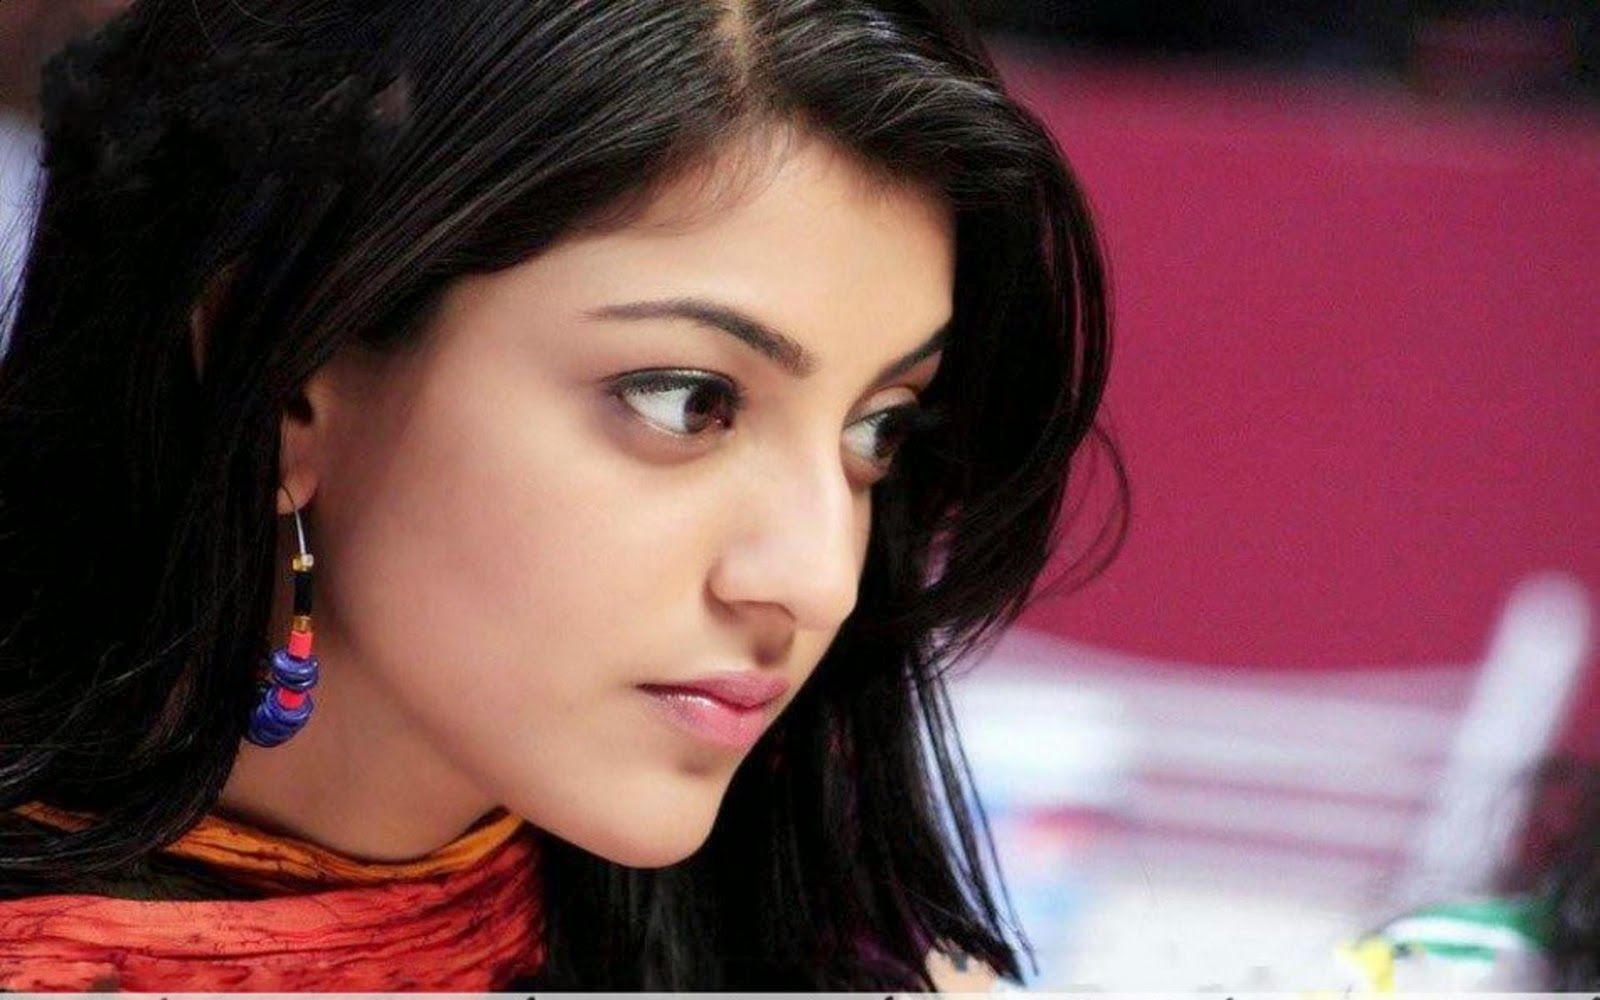 Wallpaper download kajal agarwal -  Kajal Agarwal Hd Wallpapers